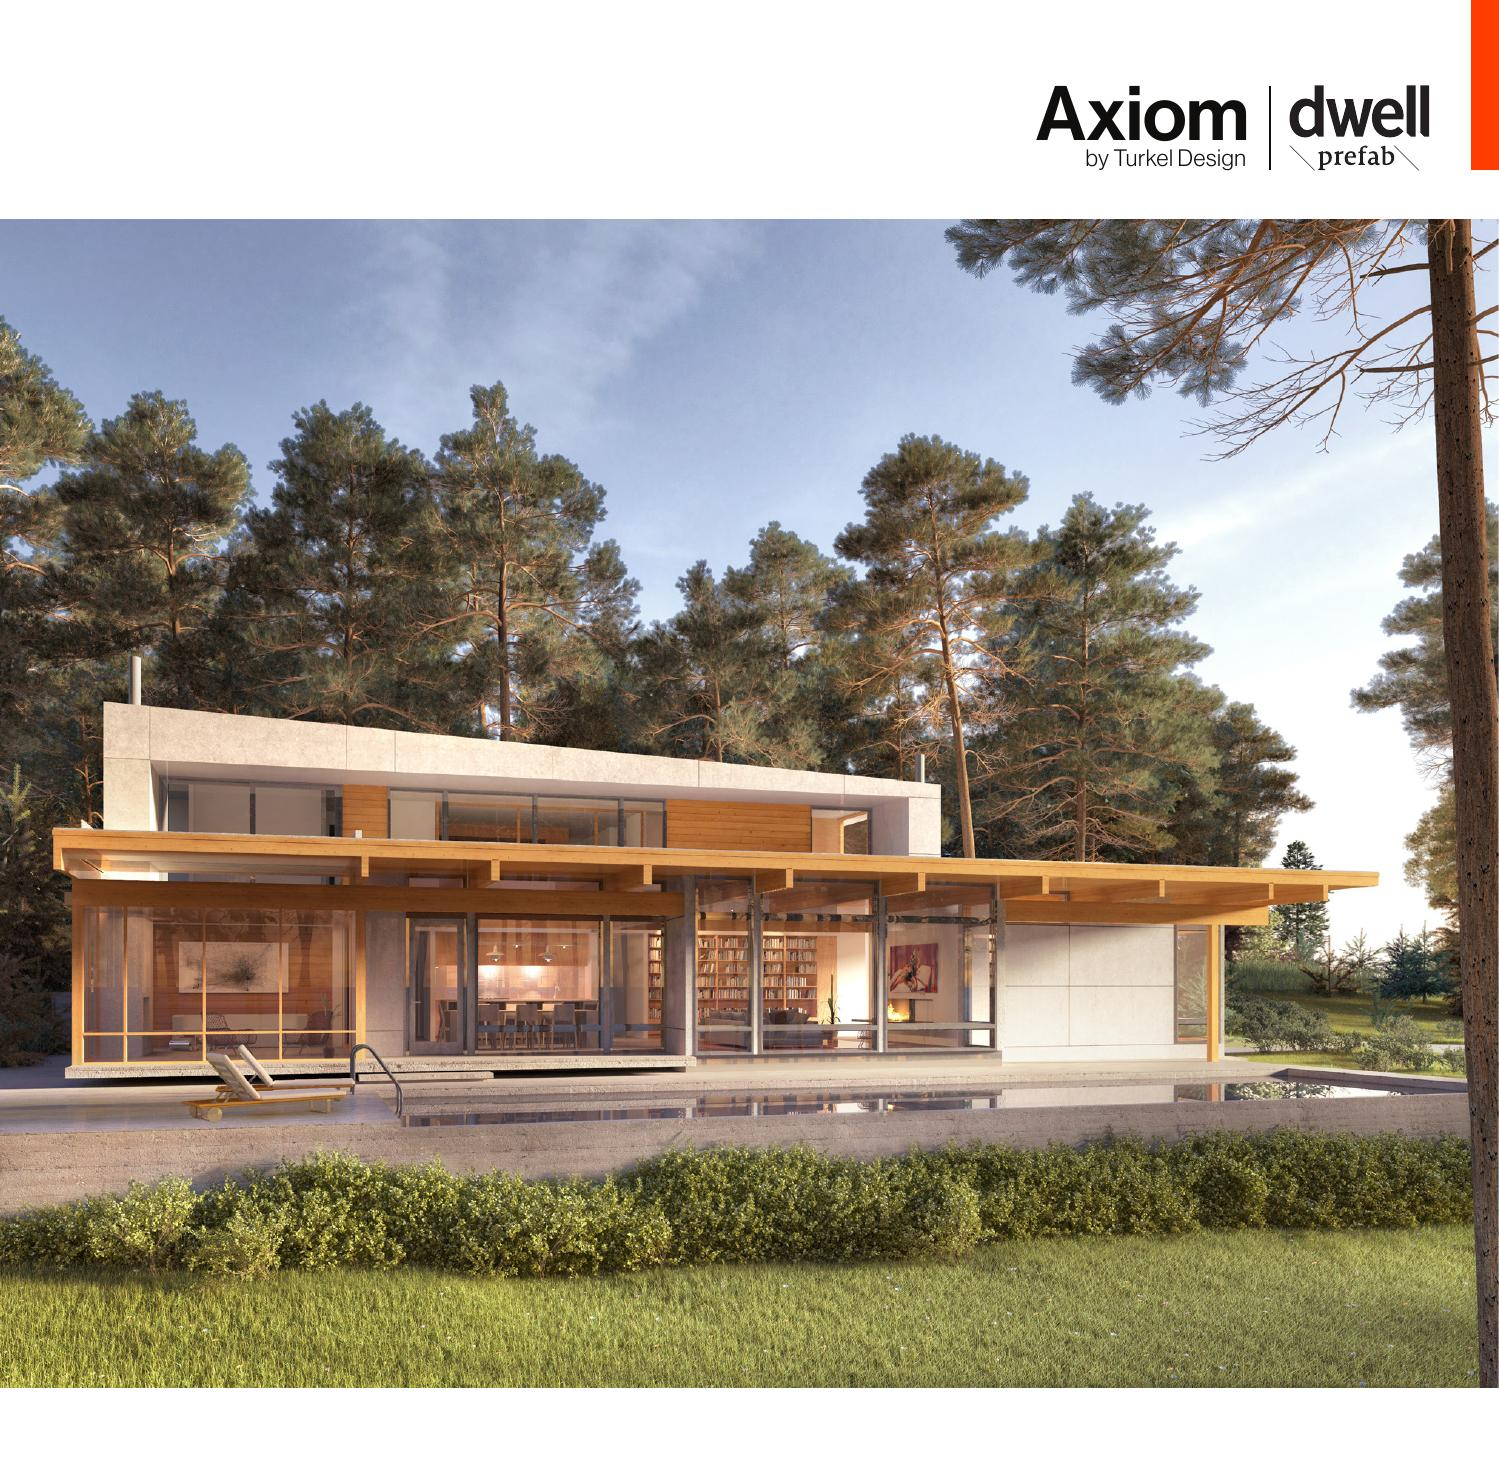 Axiom dwell prefab planbook by turkel design issuu for Dwell houses